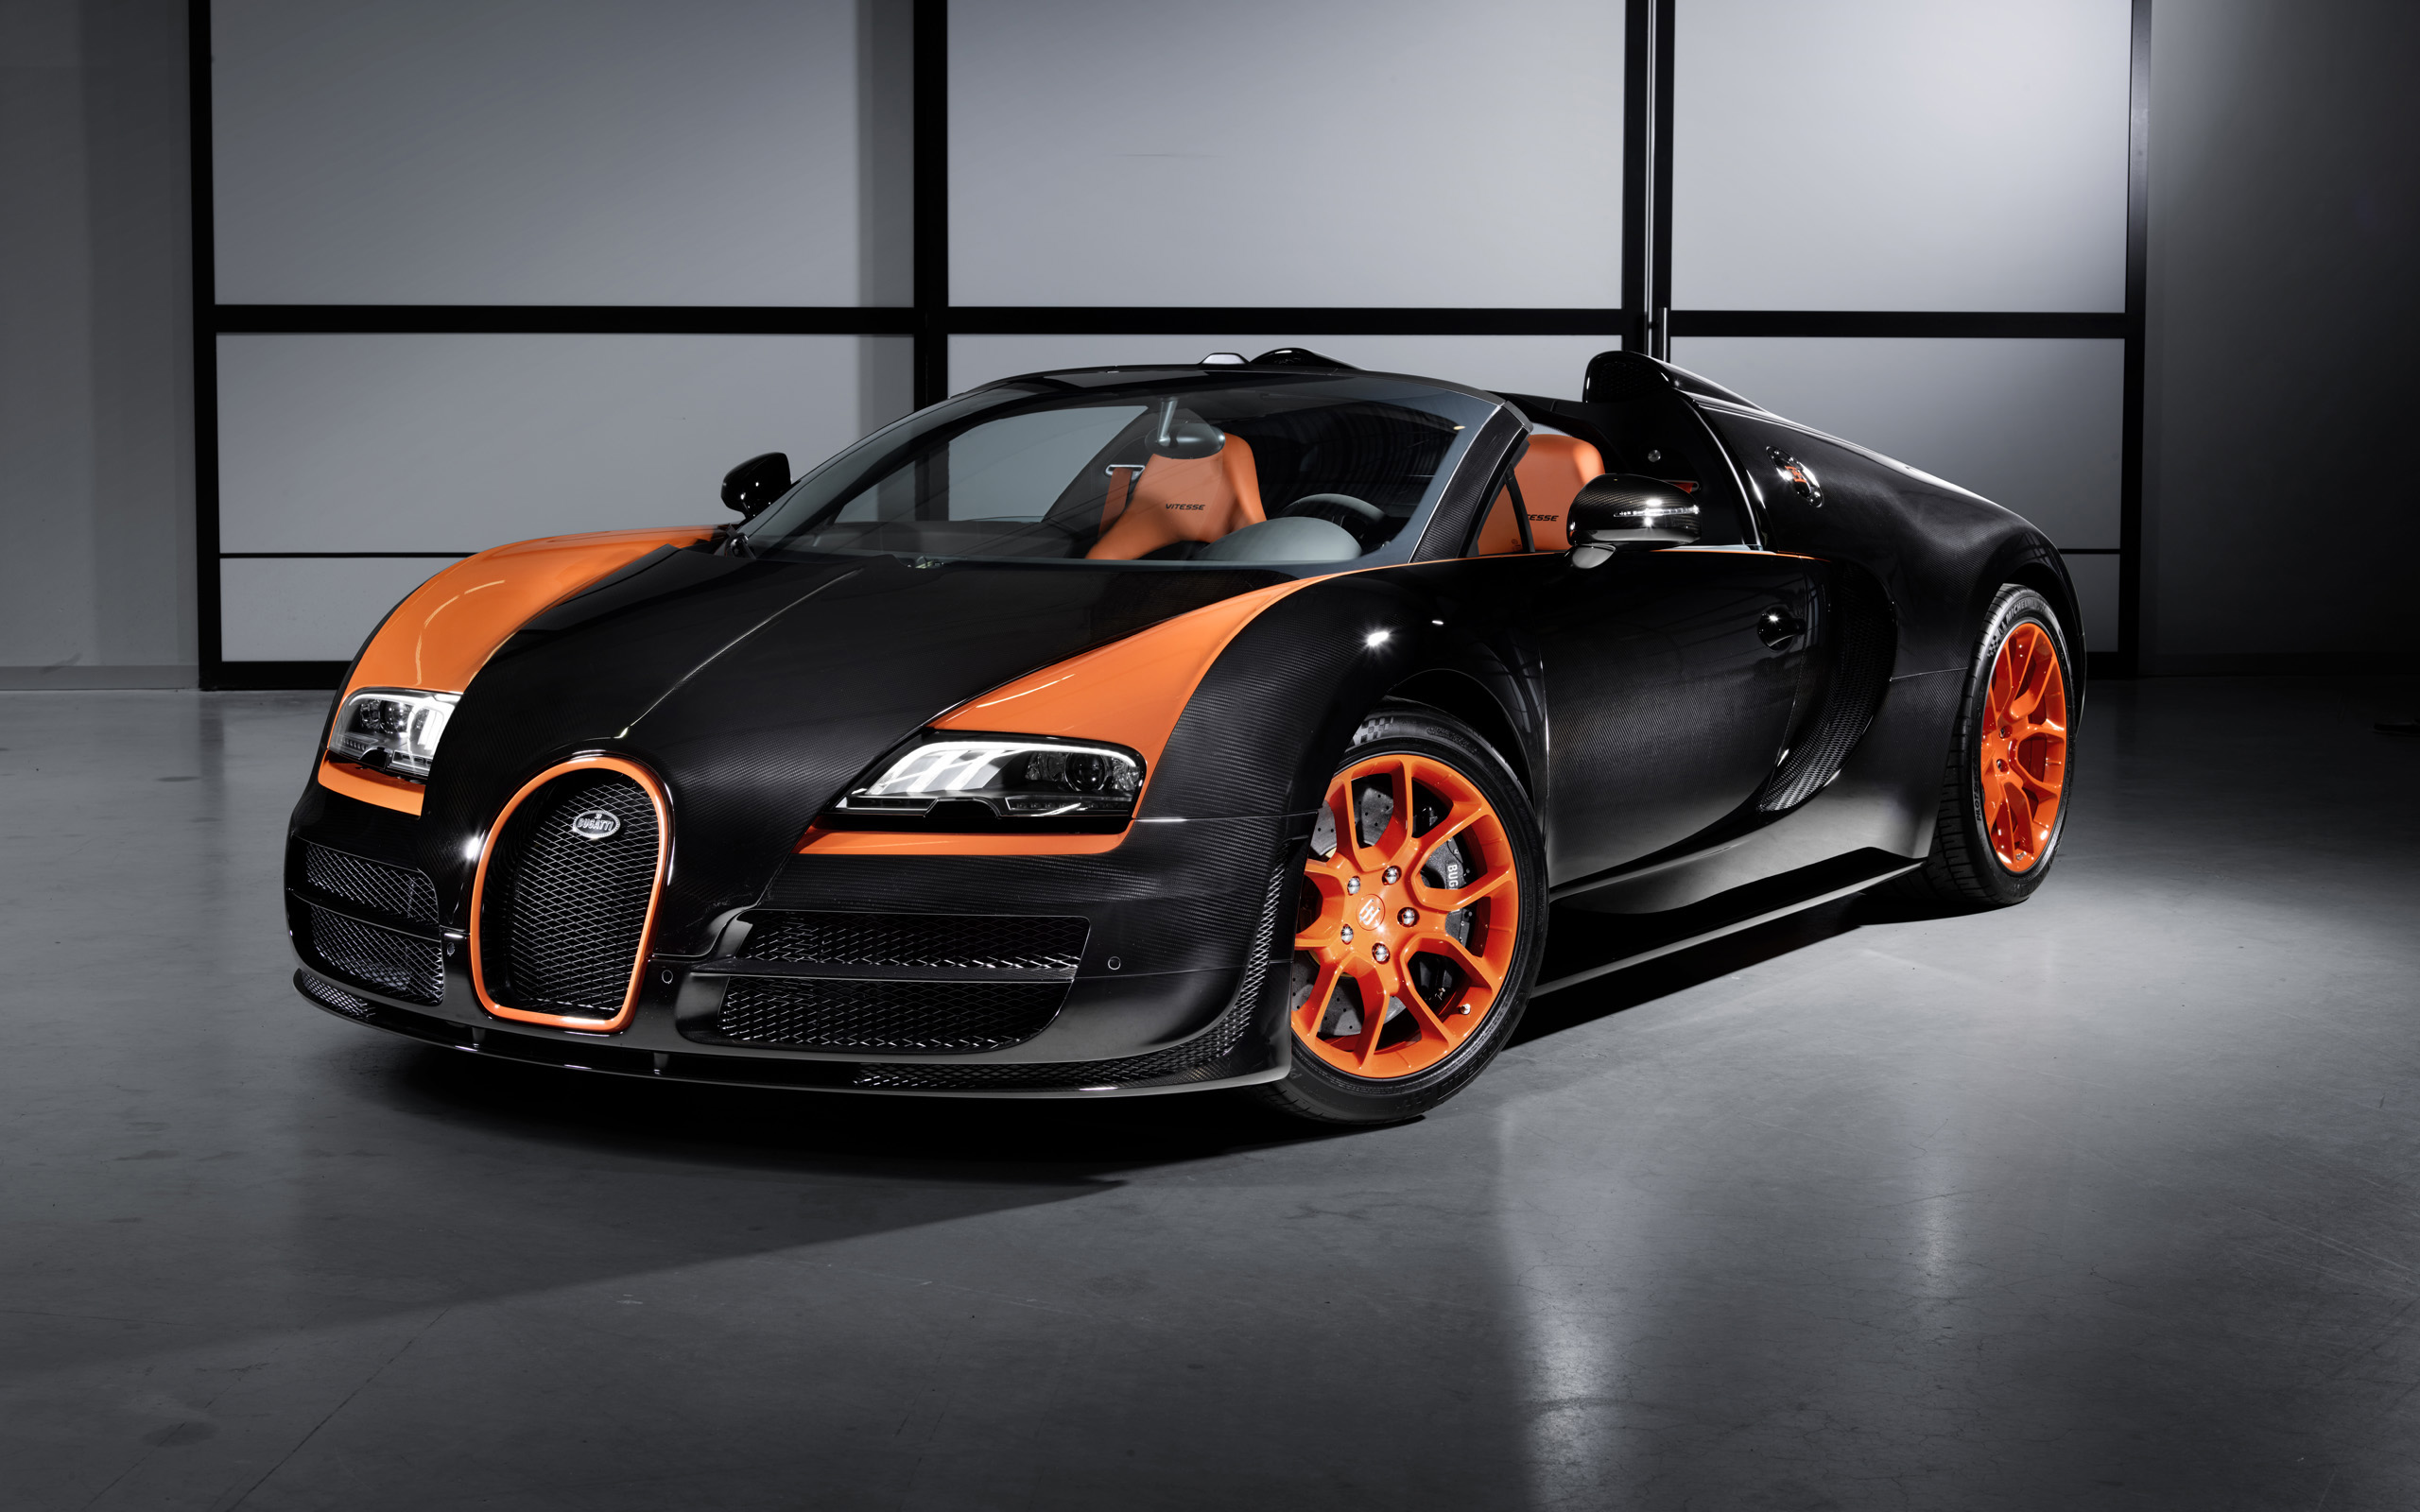 Bugatti Veyron Wallpaper HD Resolution Jqw Cars